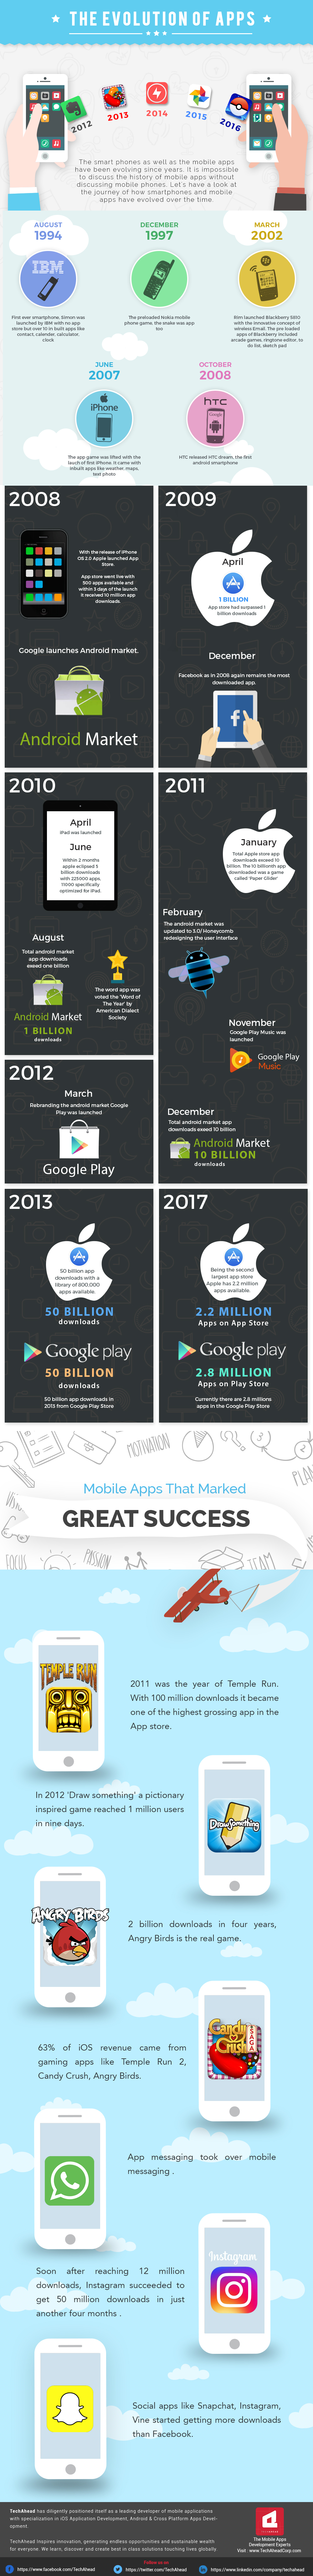 How Phone Apps Evolved Through Time - Infographic